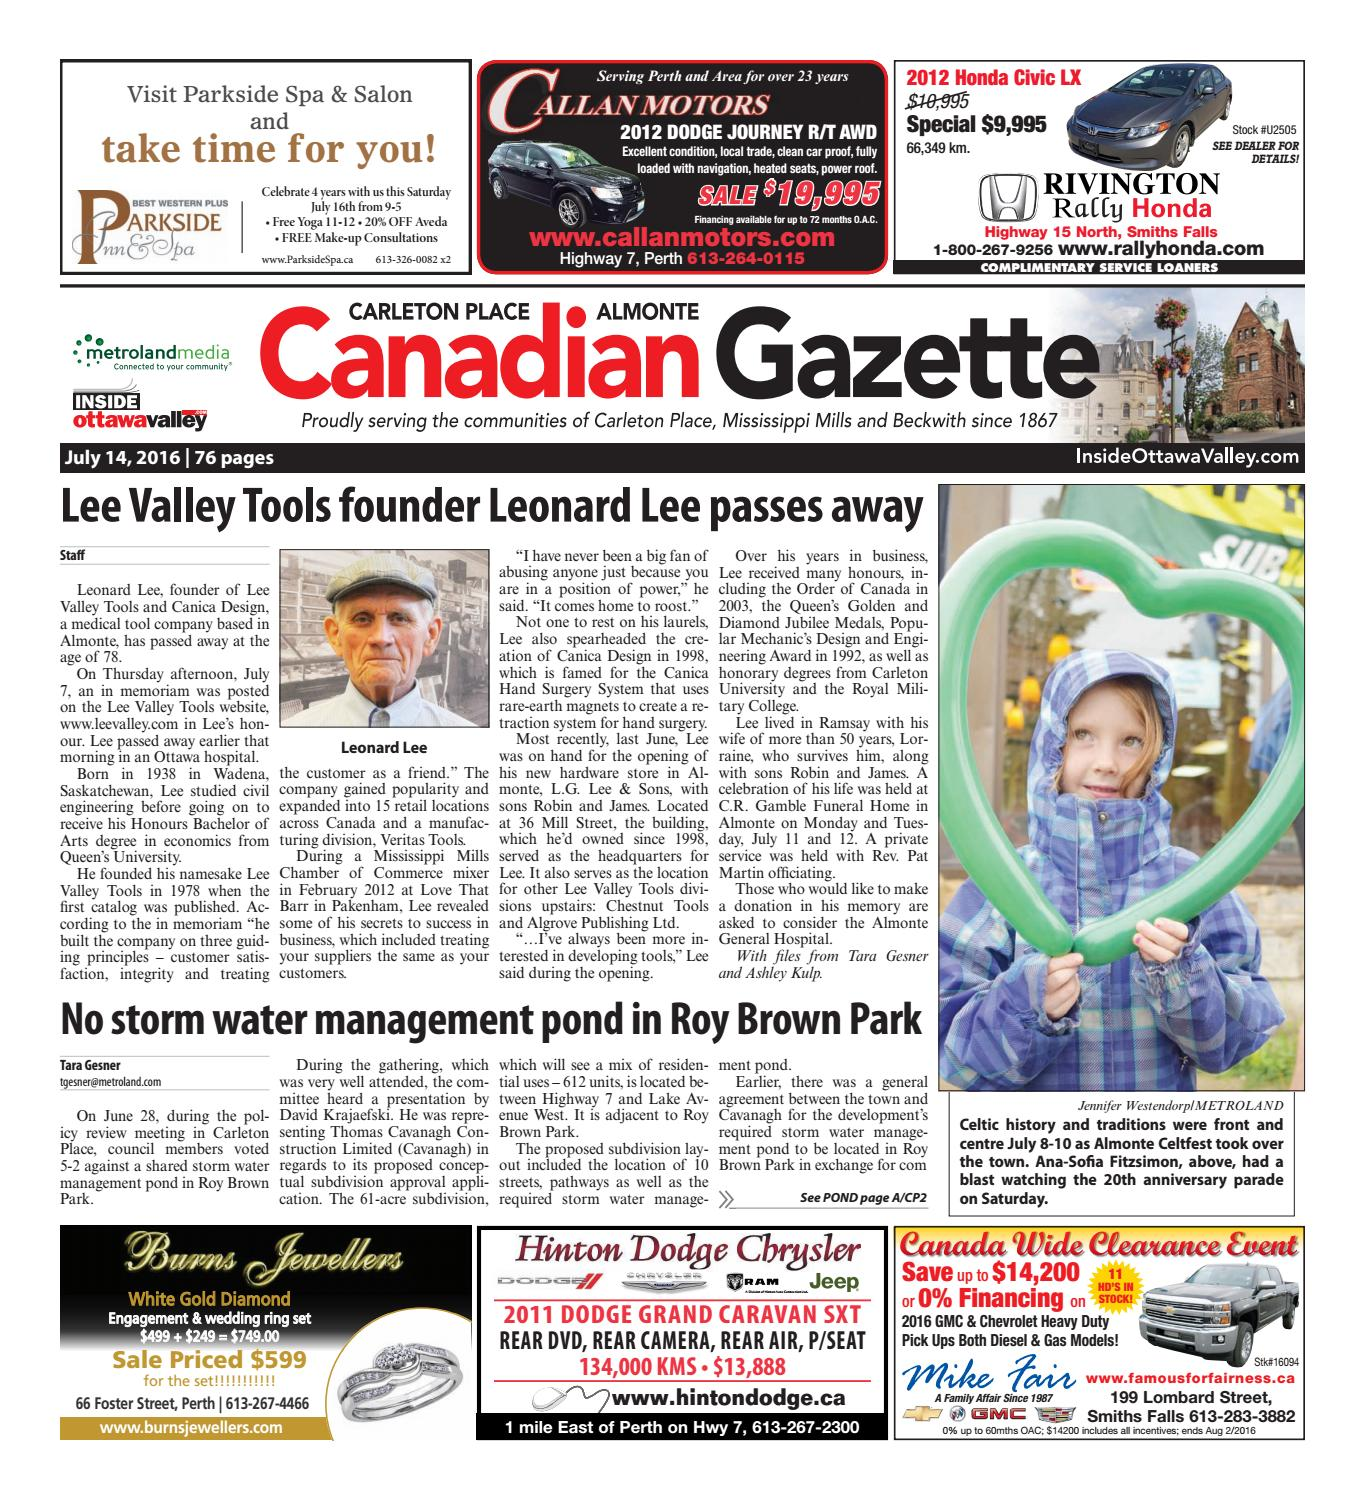 Almontecp 071416 by metroland east almonte carleton place canadian almontecp 071416 by metroland east almonte carleton place canadian gazette issuu fandeluxe Choice Image